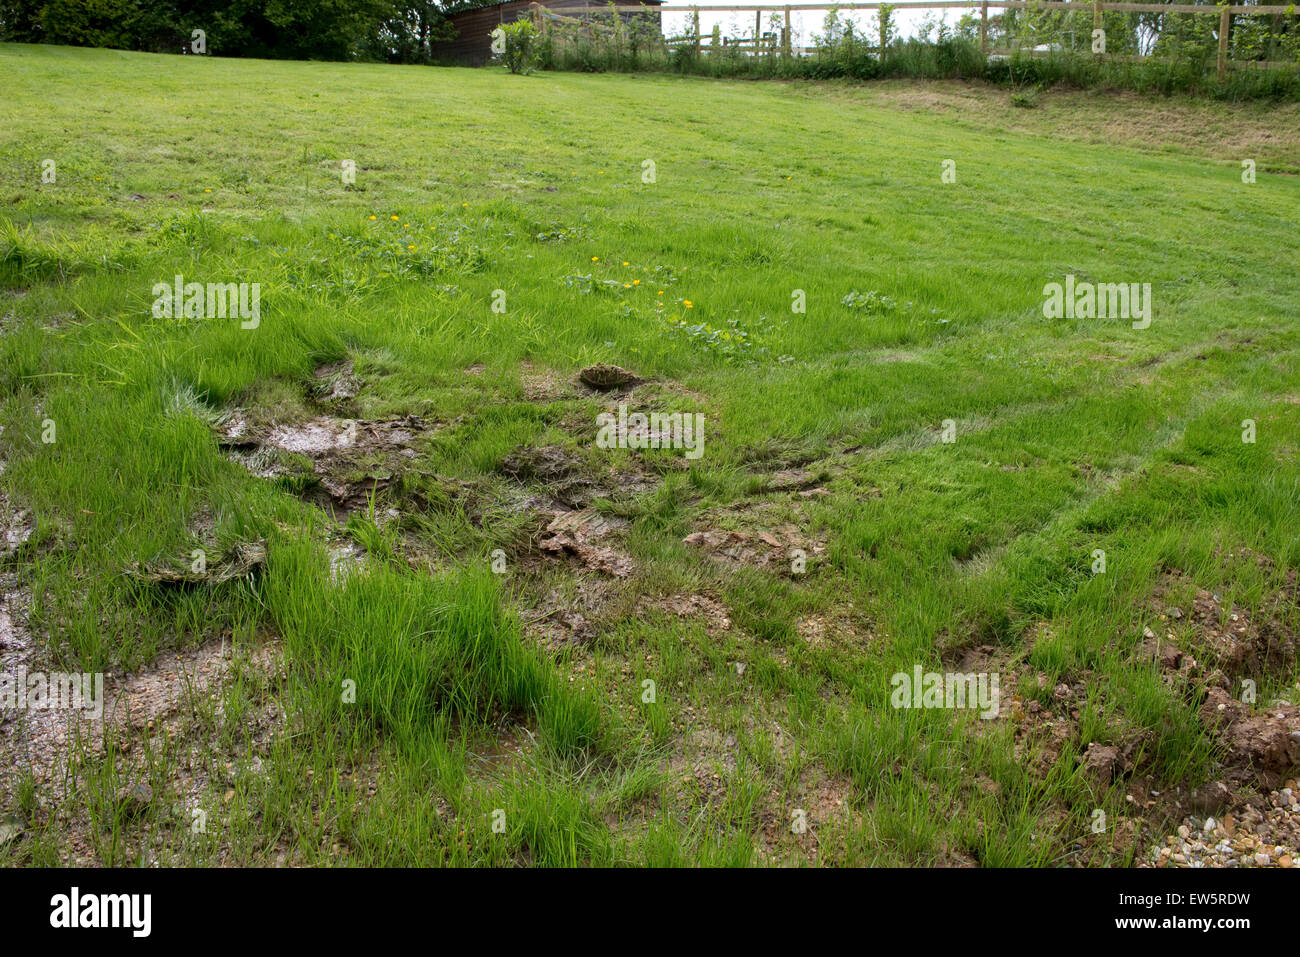 Outcrop of spring water on a grass lawn with clay subsoil after a very wet spring, Berkshire, June - Stock Image